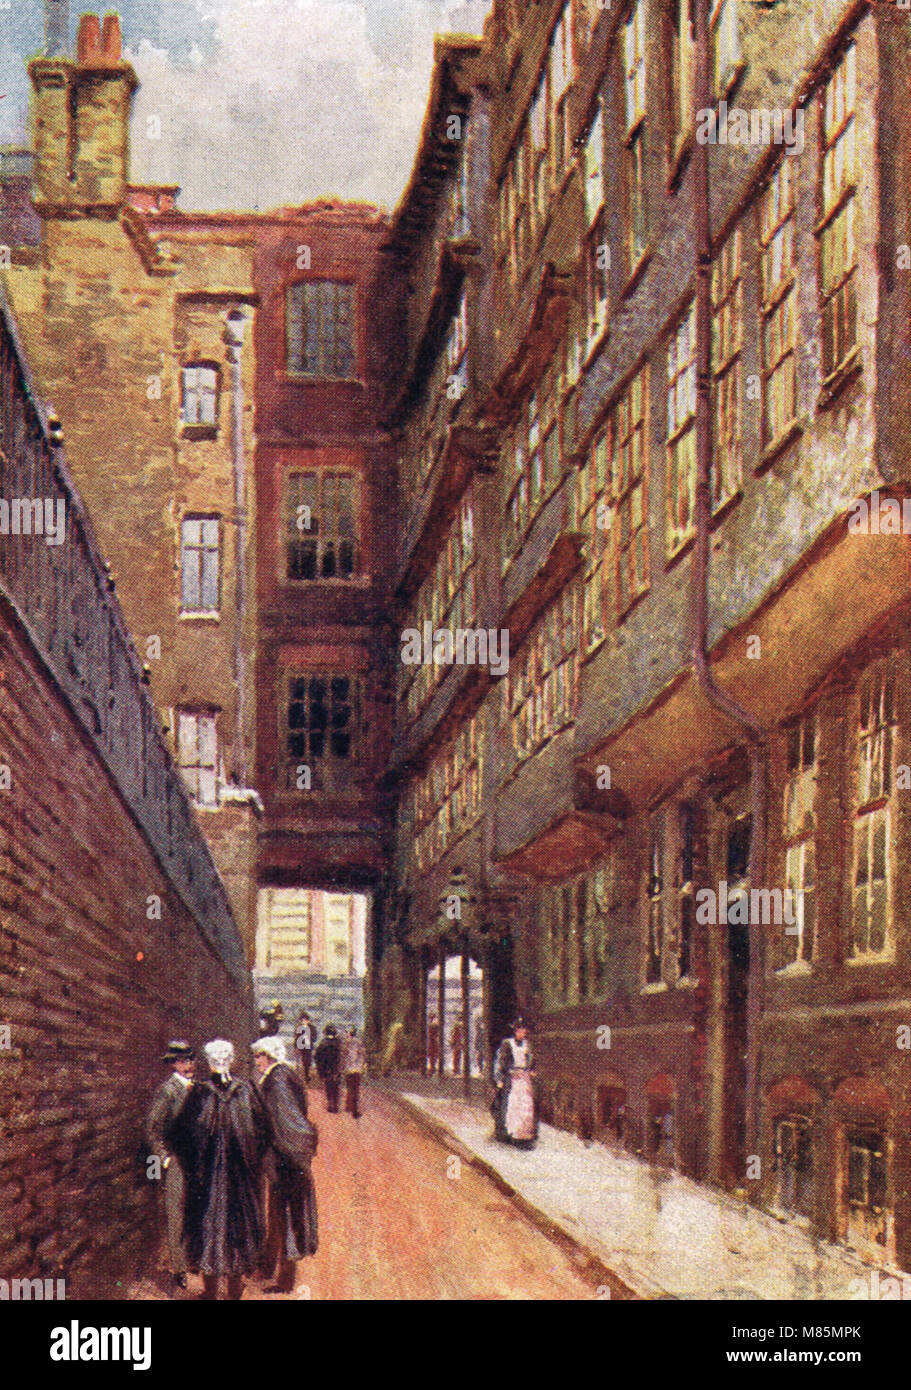 Middle Temple Lane, London, England, circa 1905 - Stock Image